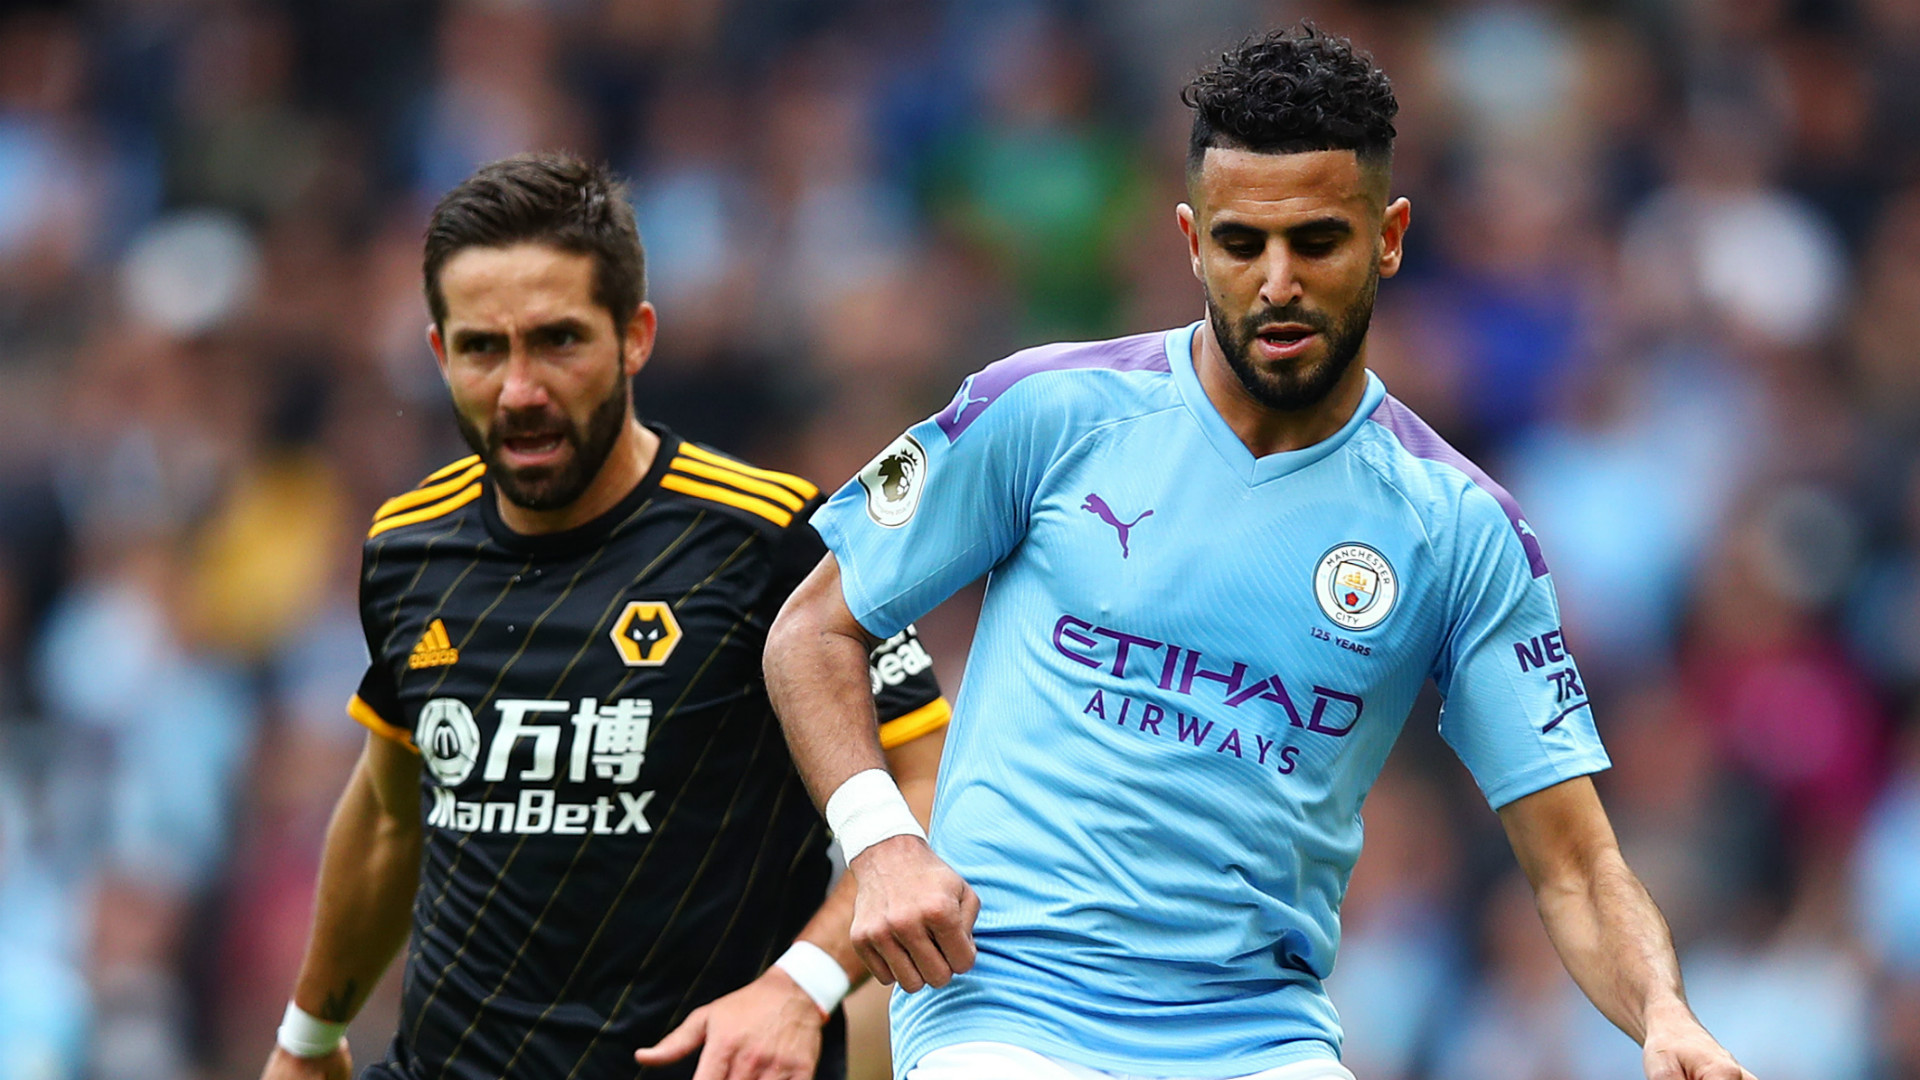 Mahrez Lifts Lid On His Initial Struggle To Adapt To